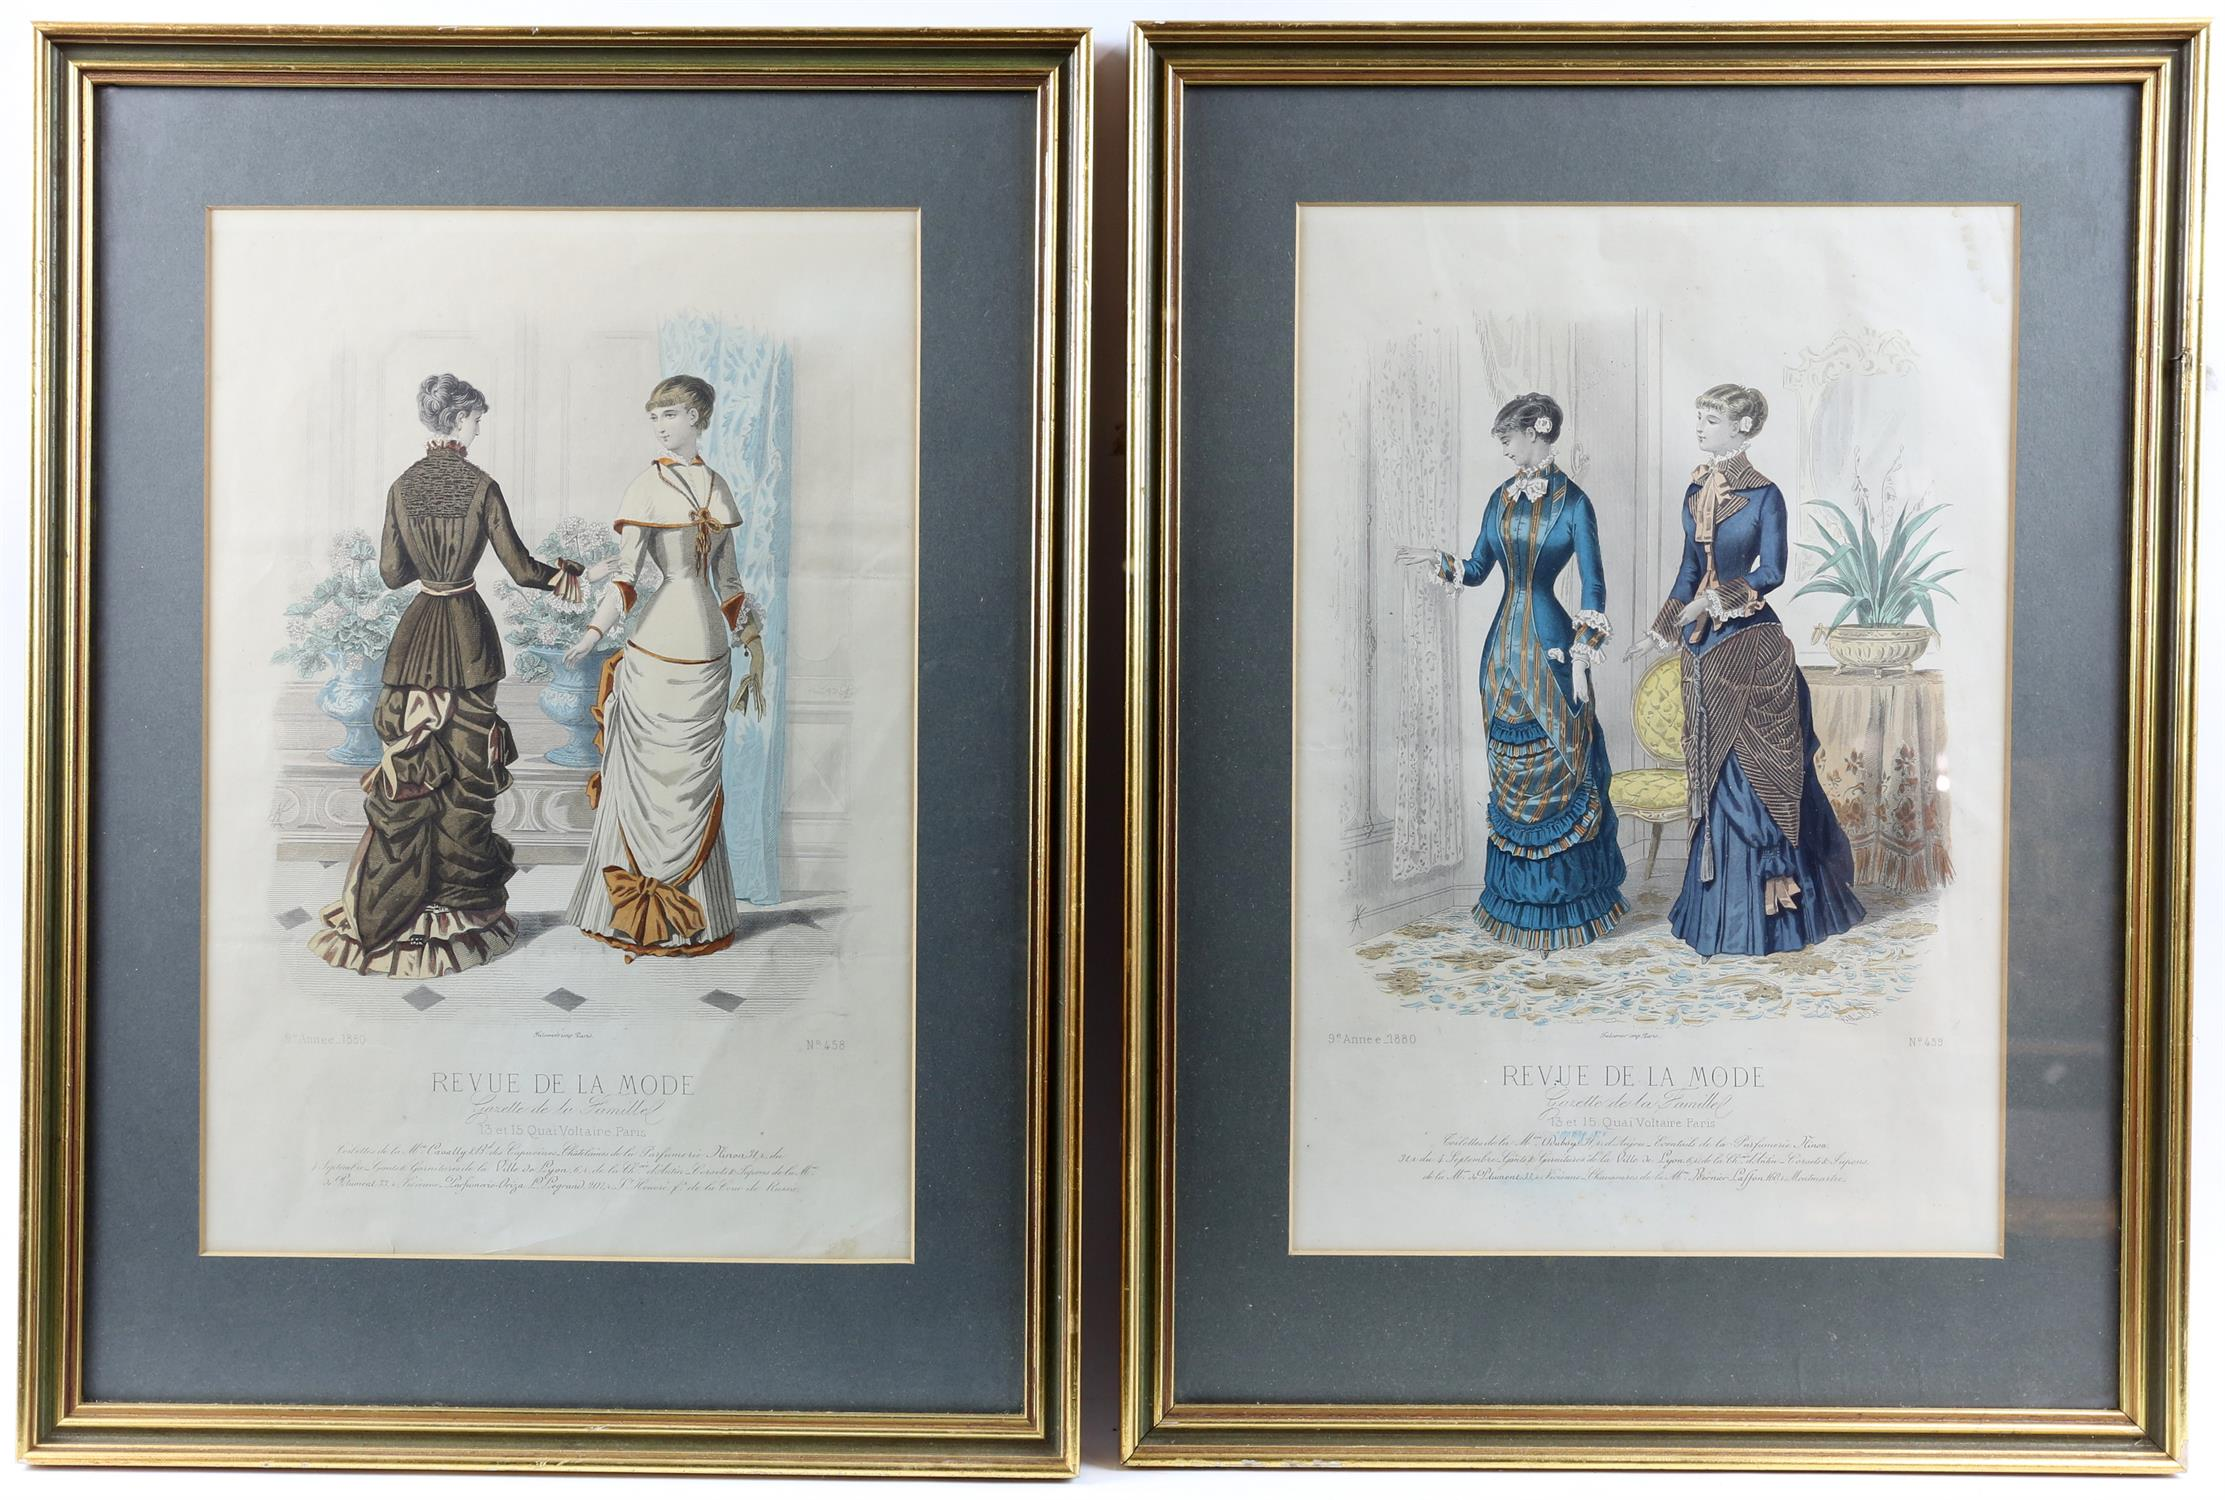 Collection of nineteenth-century French hand-coloured fashion prints, including 'Revue de la mode', - Image 5 of 5